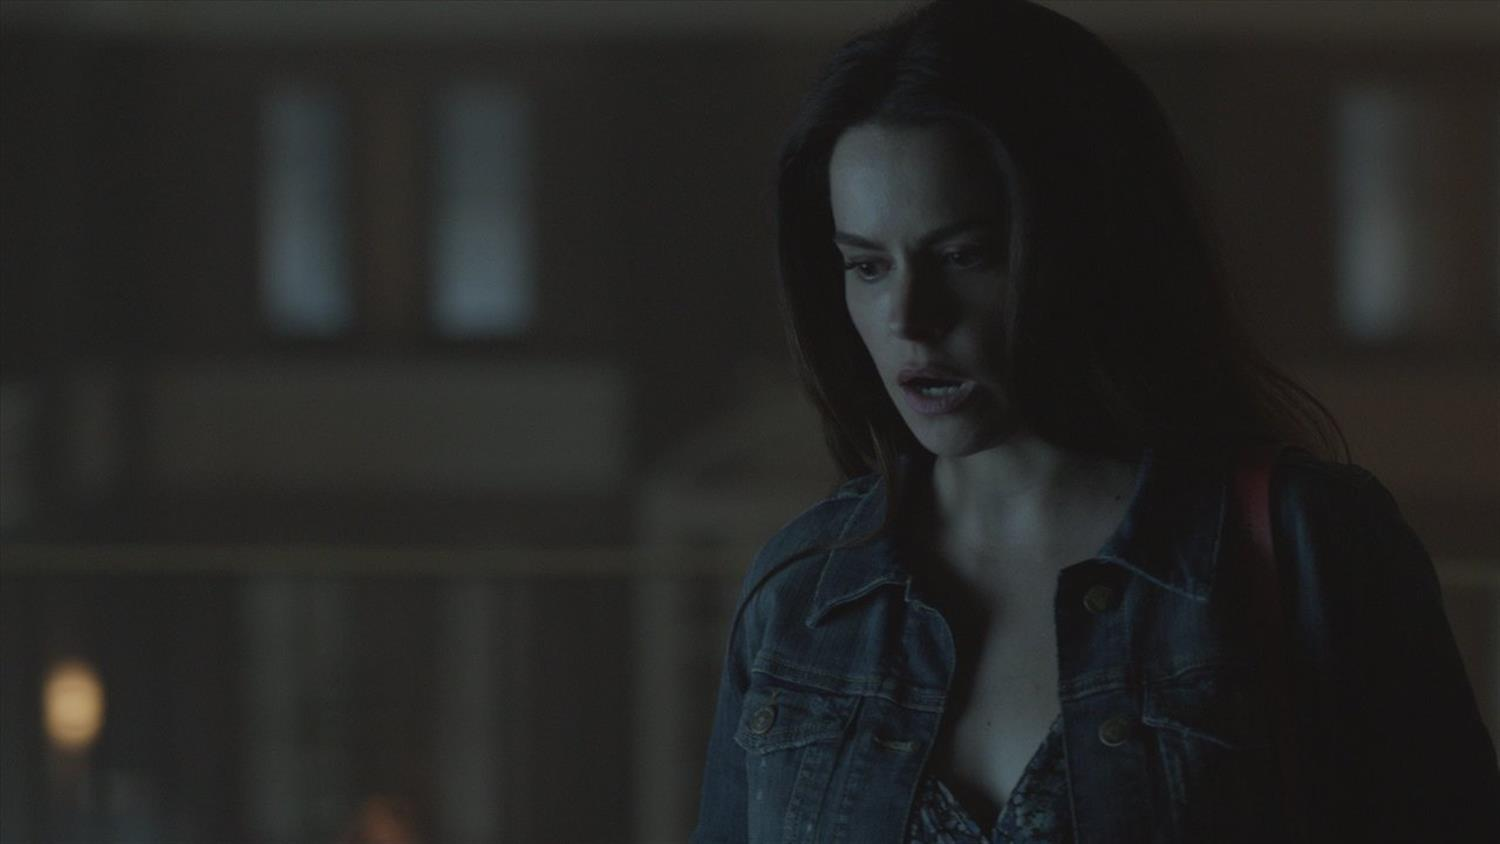 12 Monkeys Recap - Season 2, Episode 5